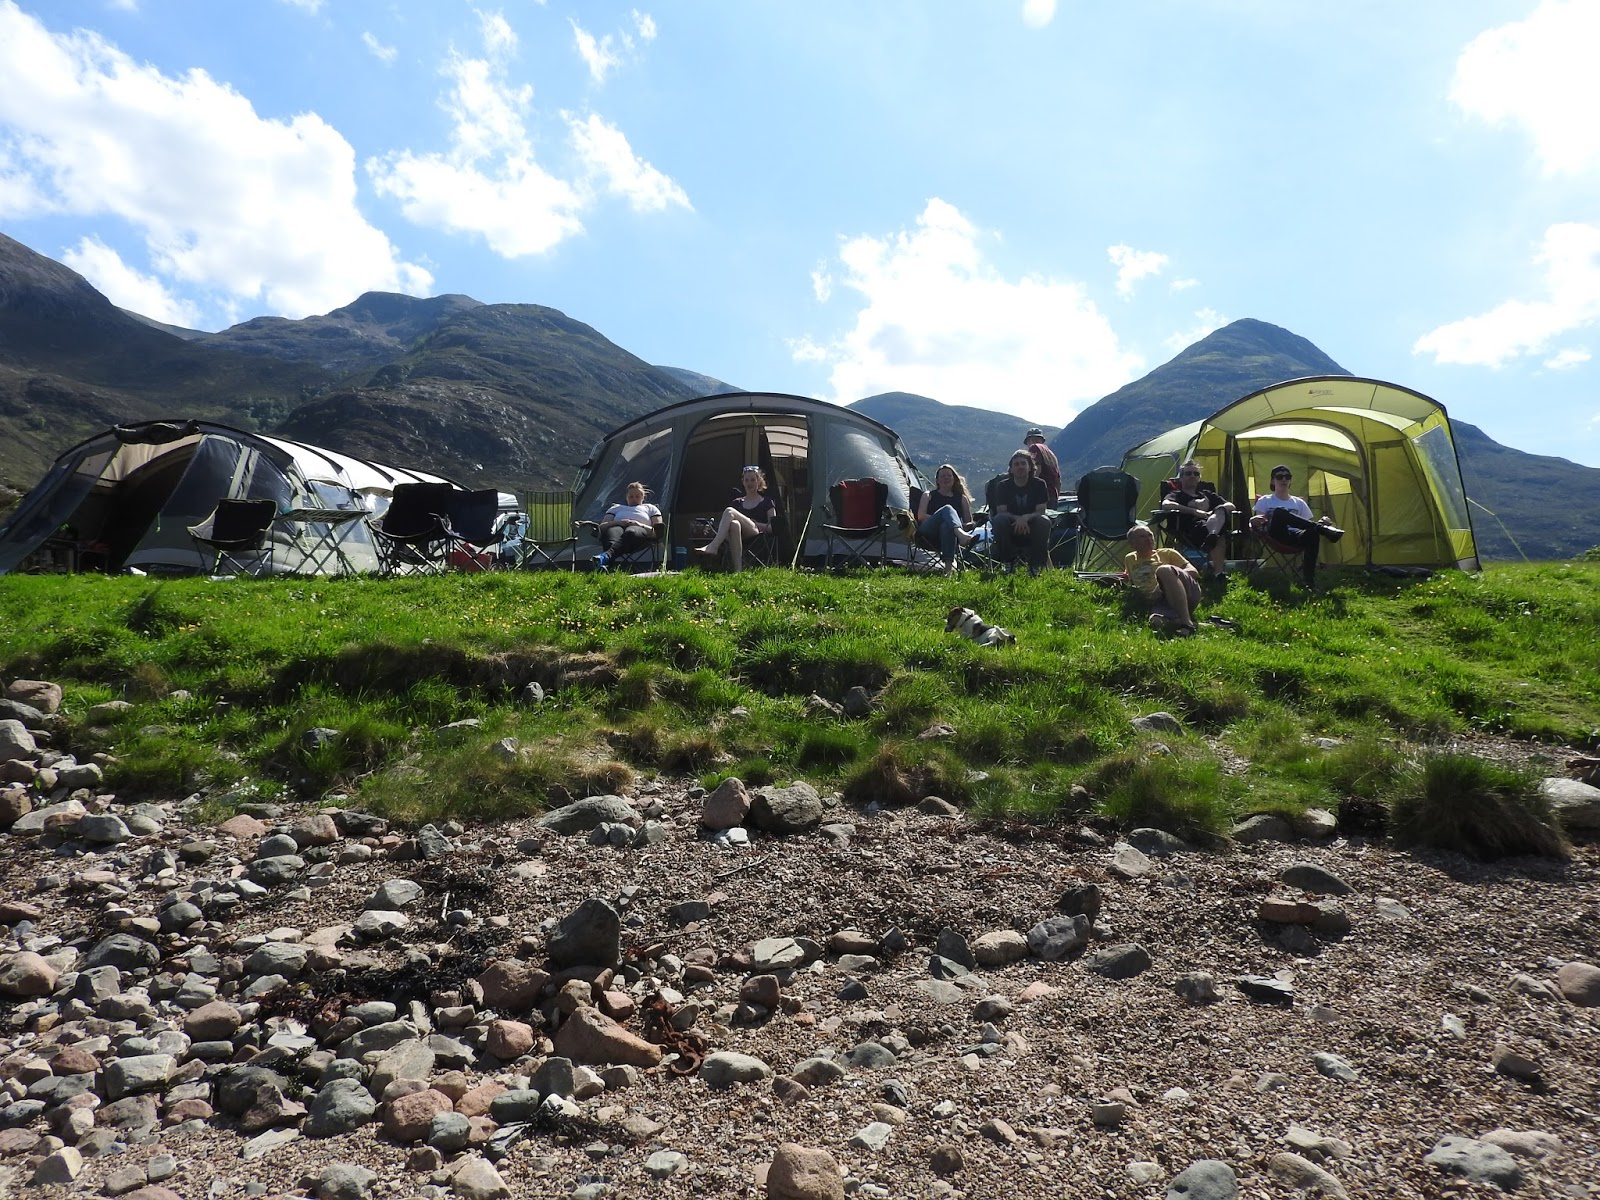 A colourful life: camping without wellies